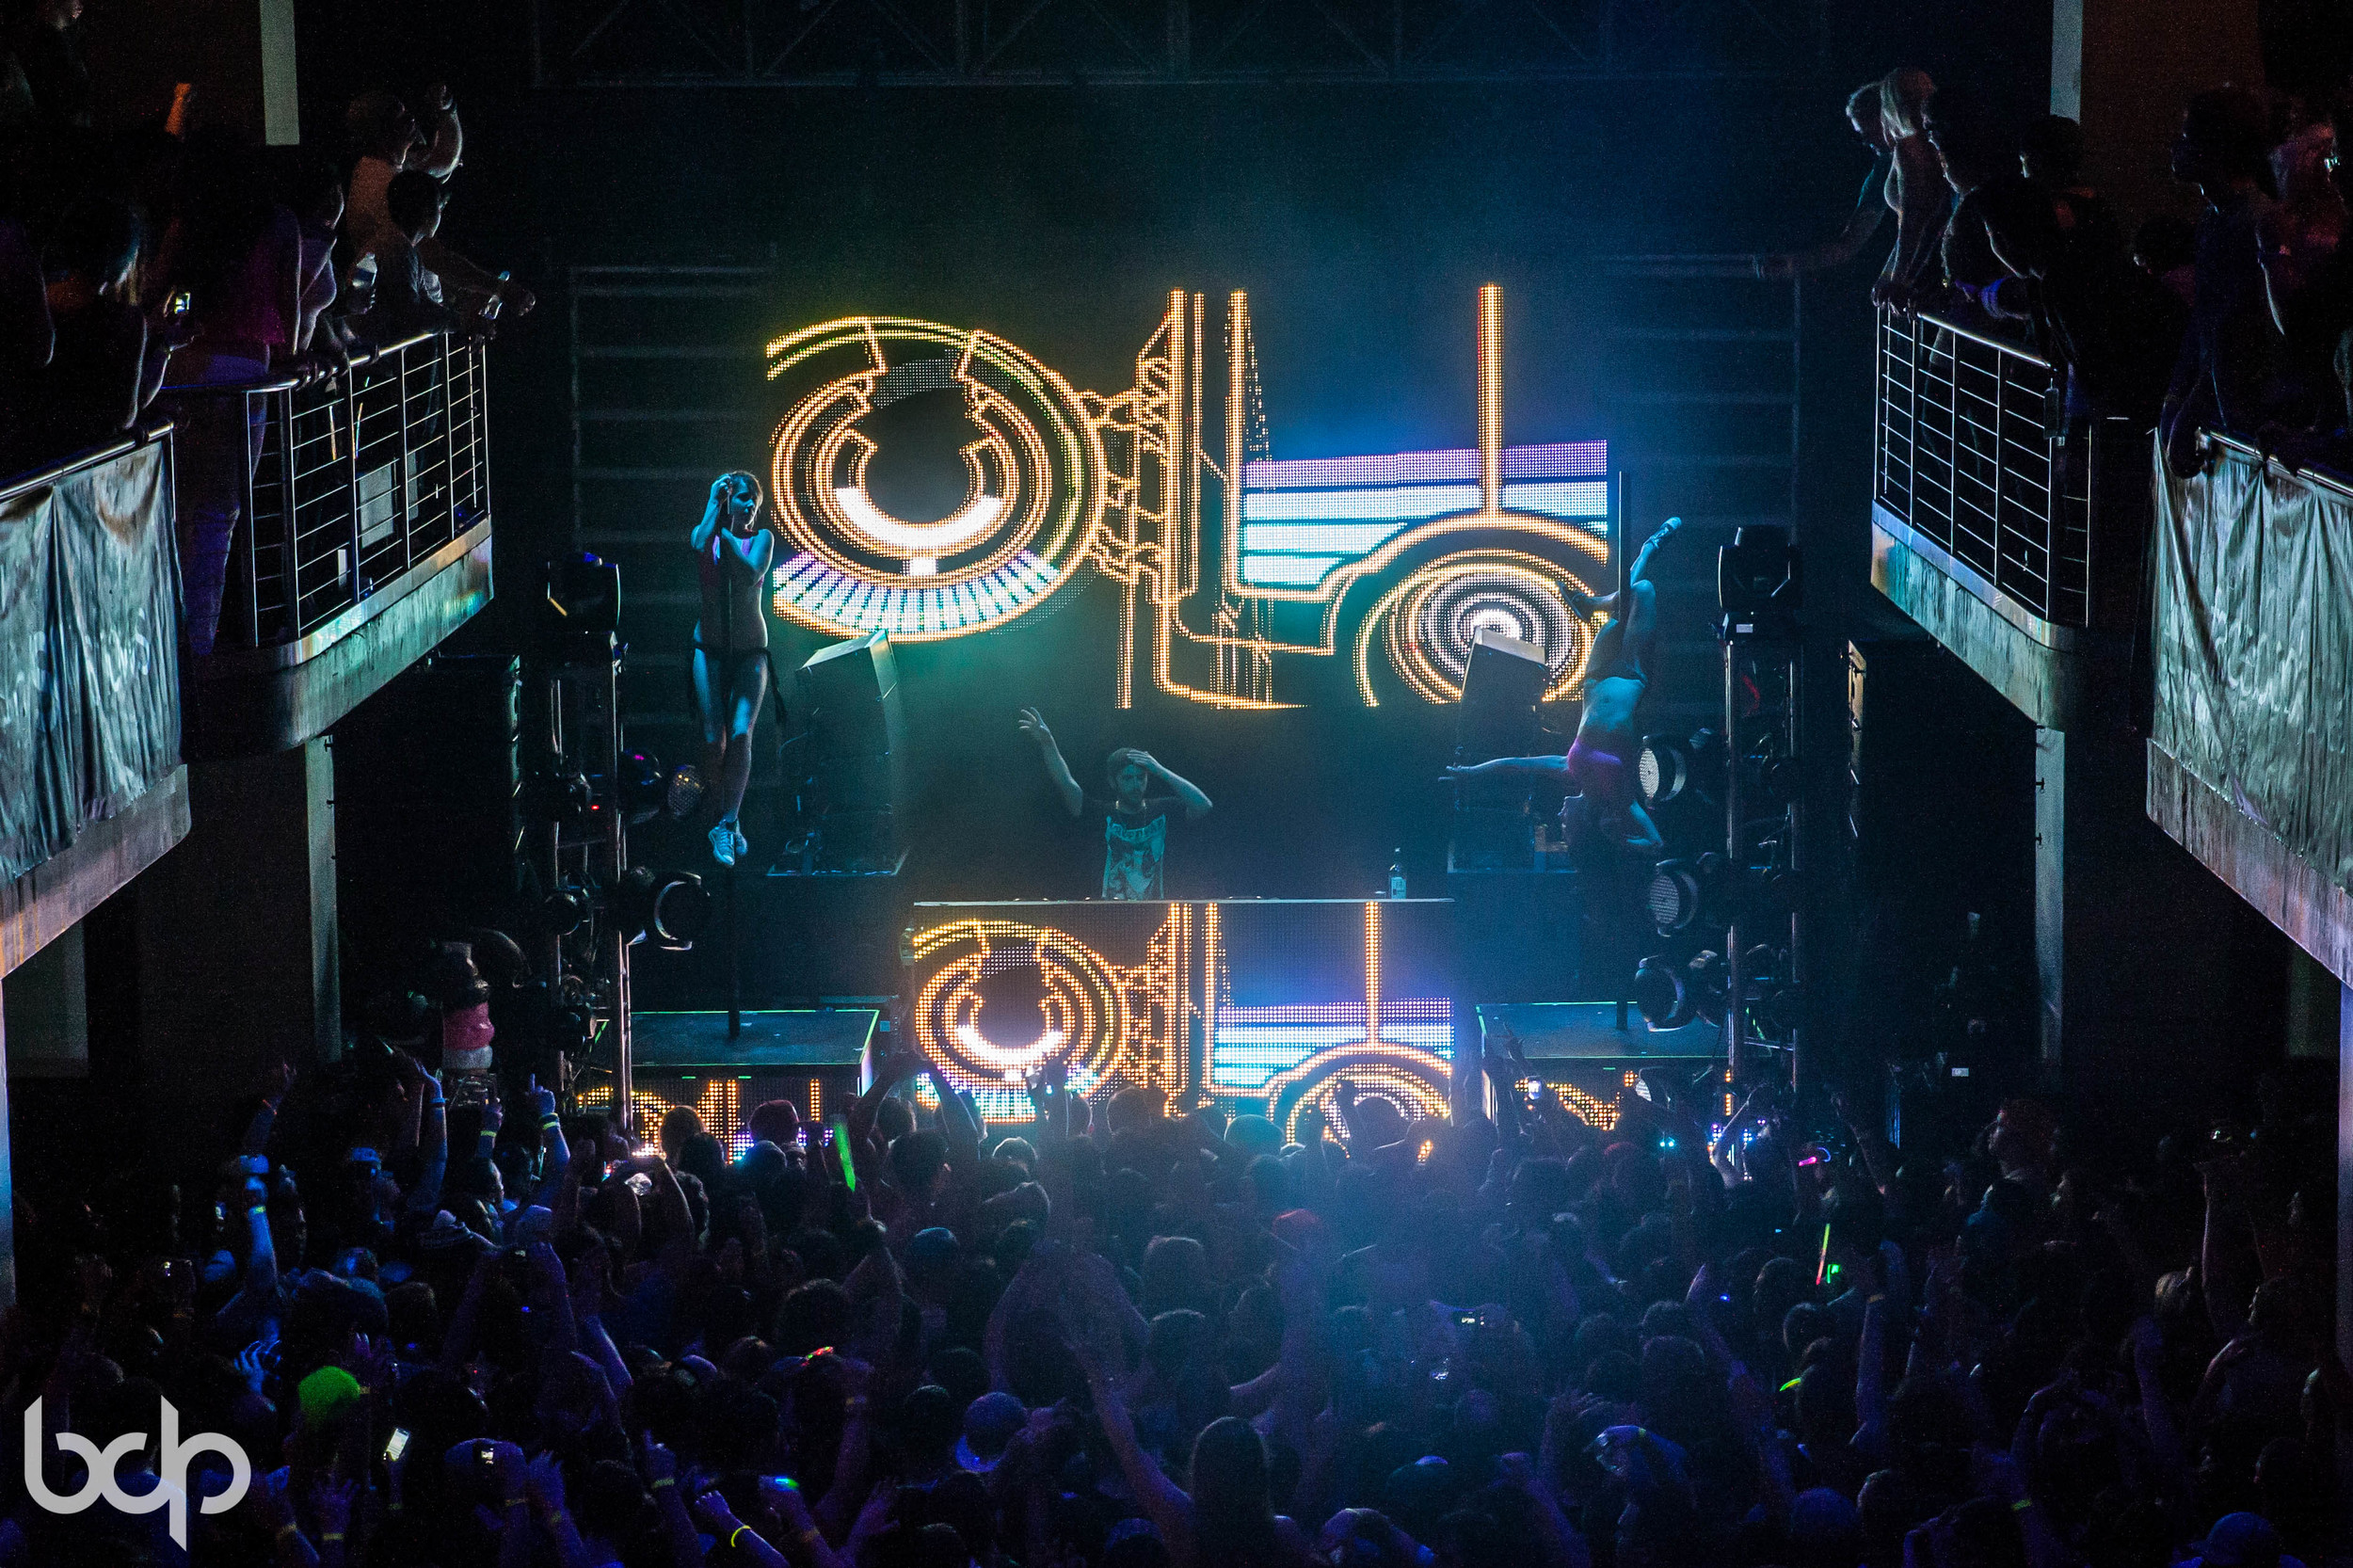 Aokify America Tour at Epic at Epic 110913 BDP-140.jpg